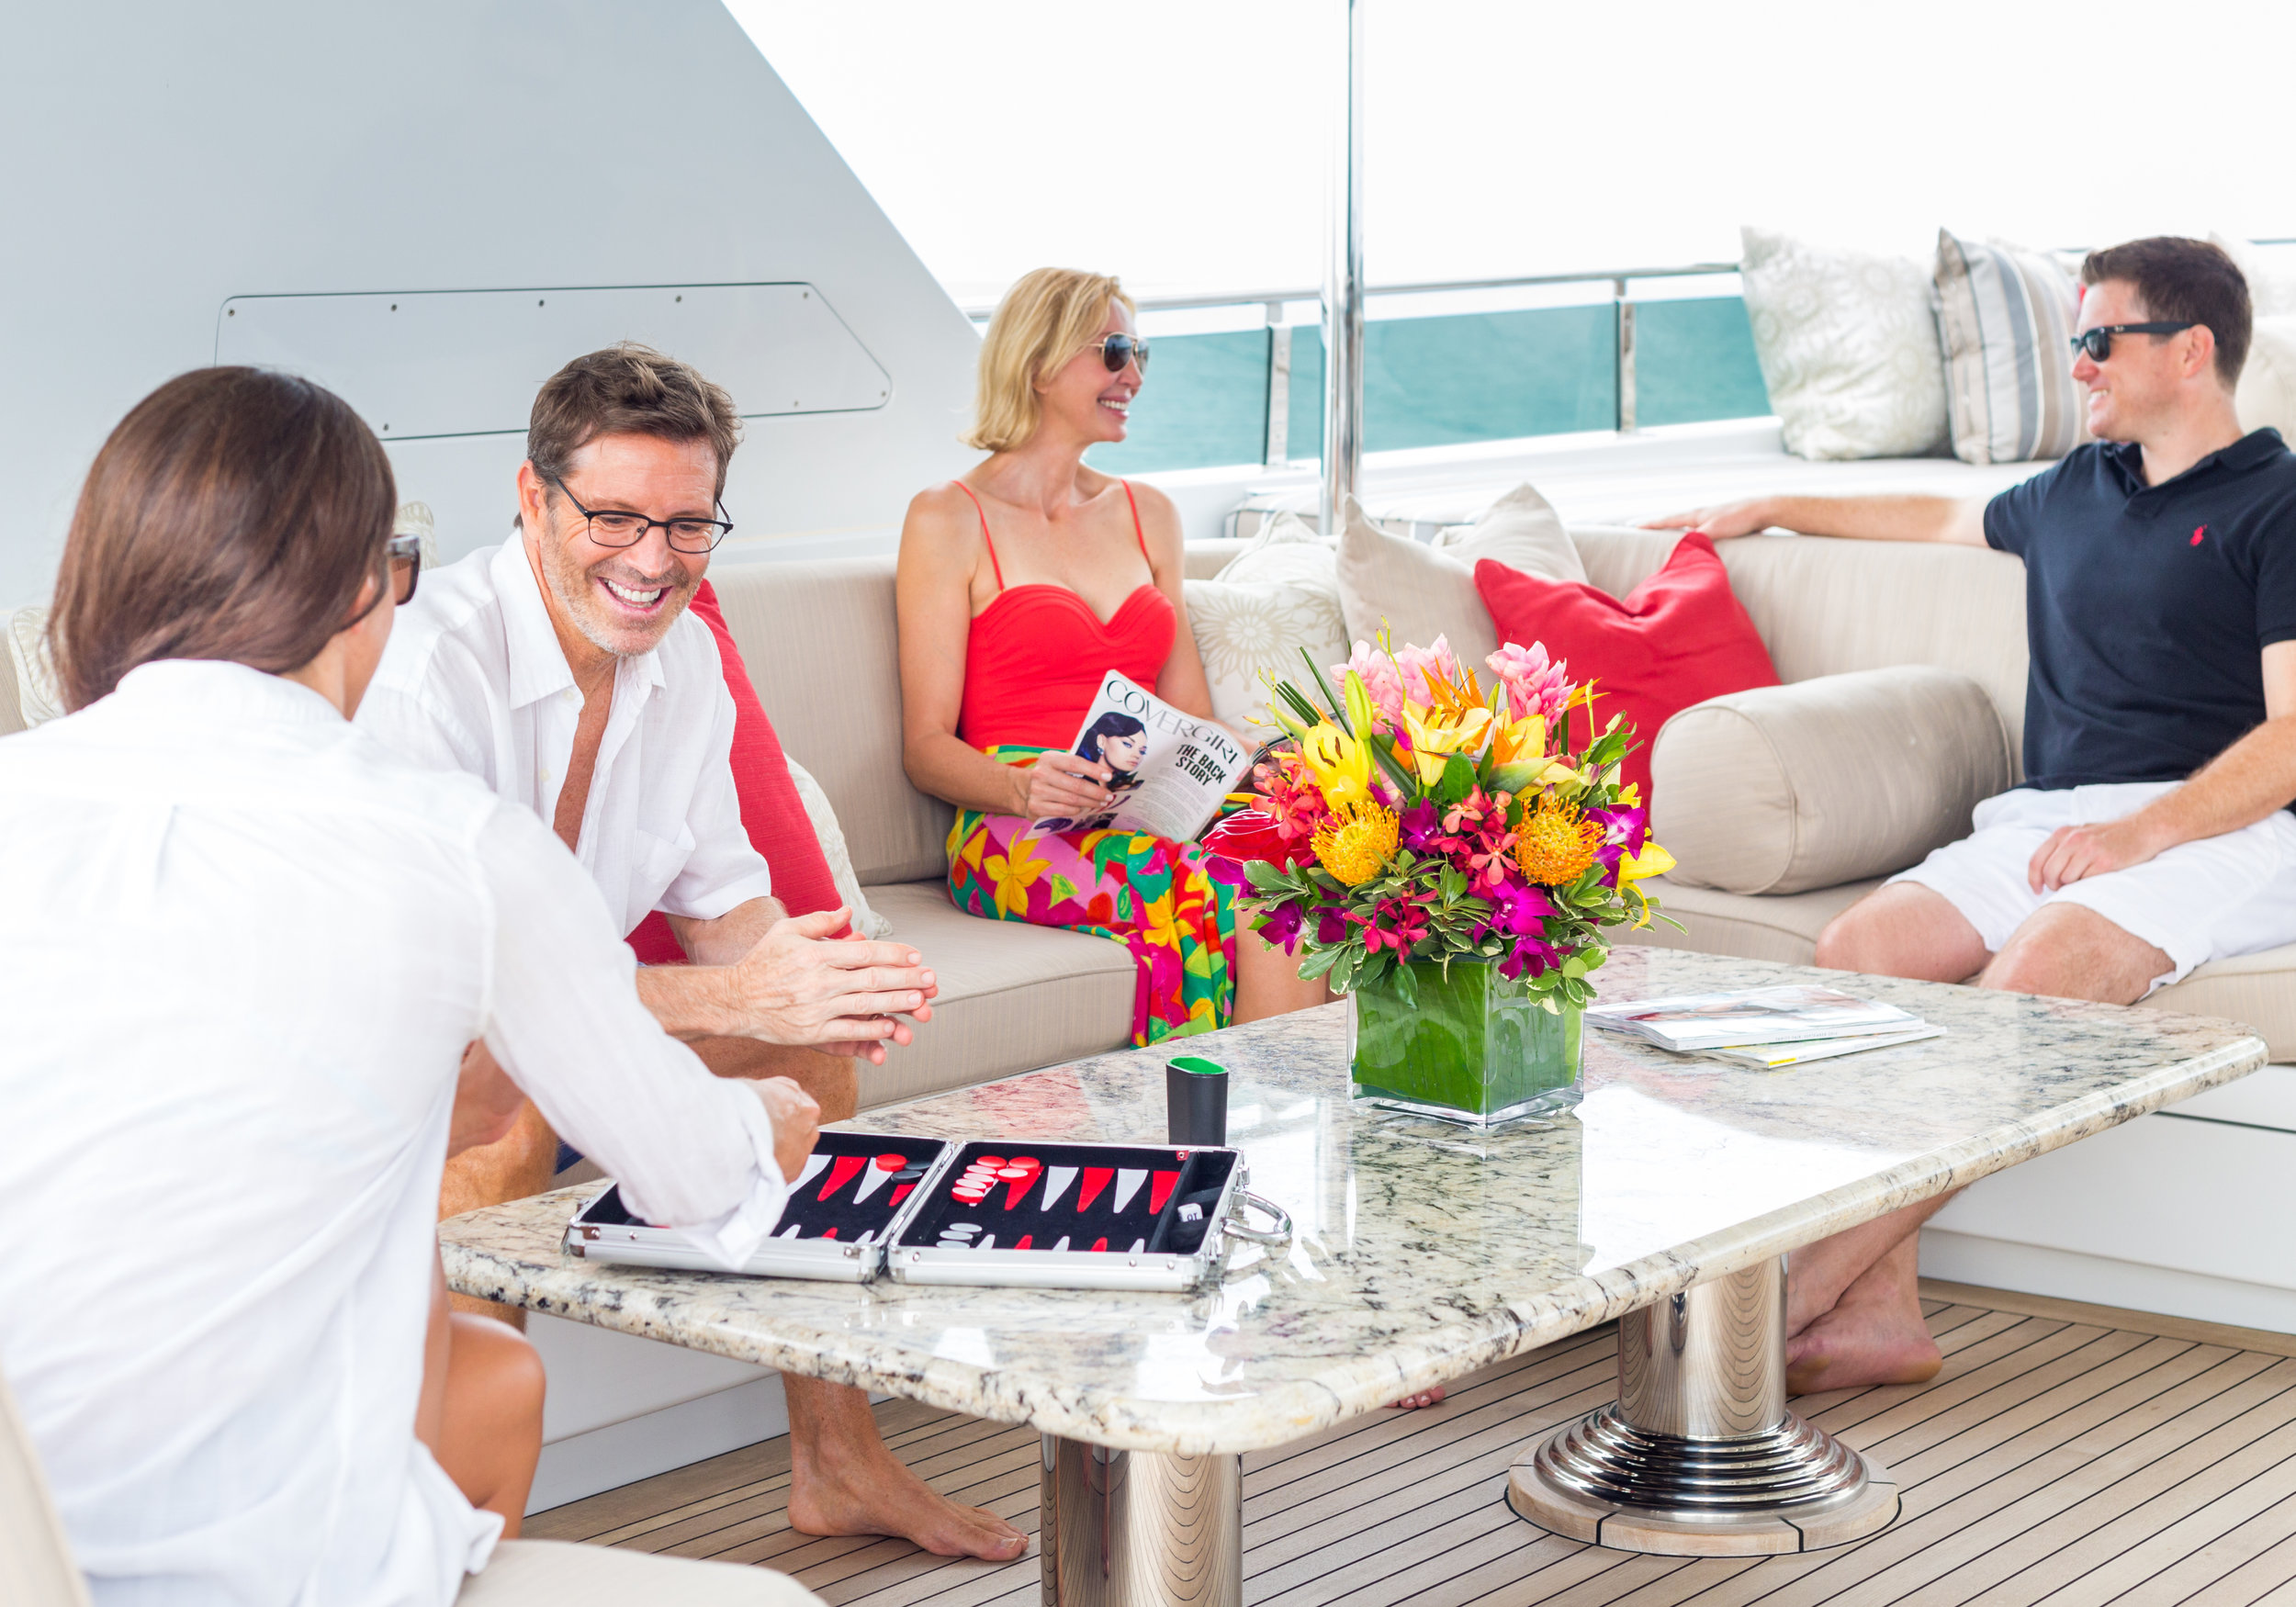 After the day's activities relax in the sundeck